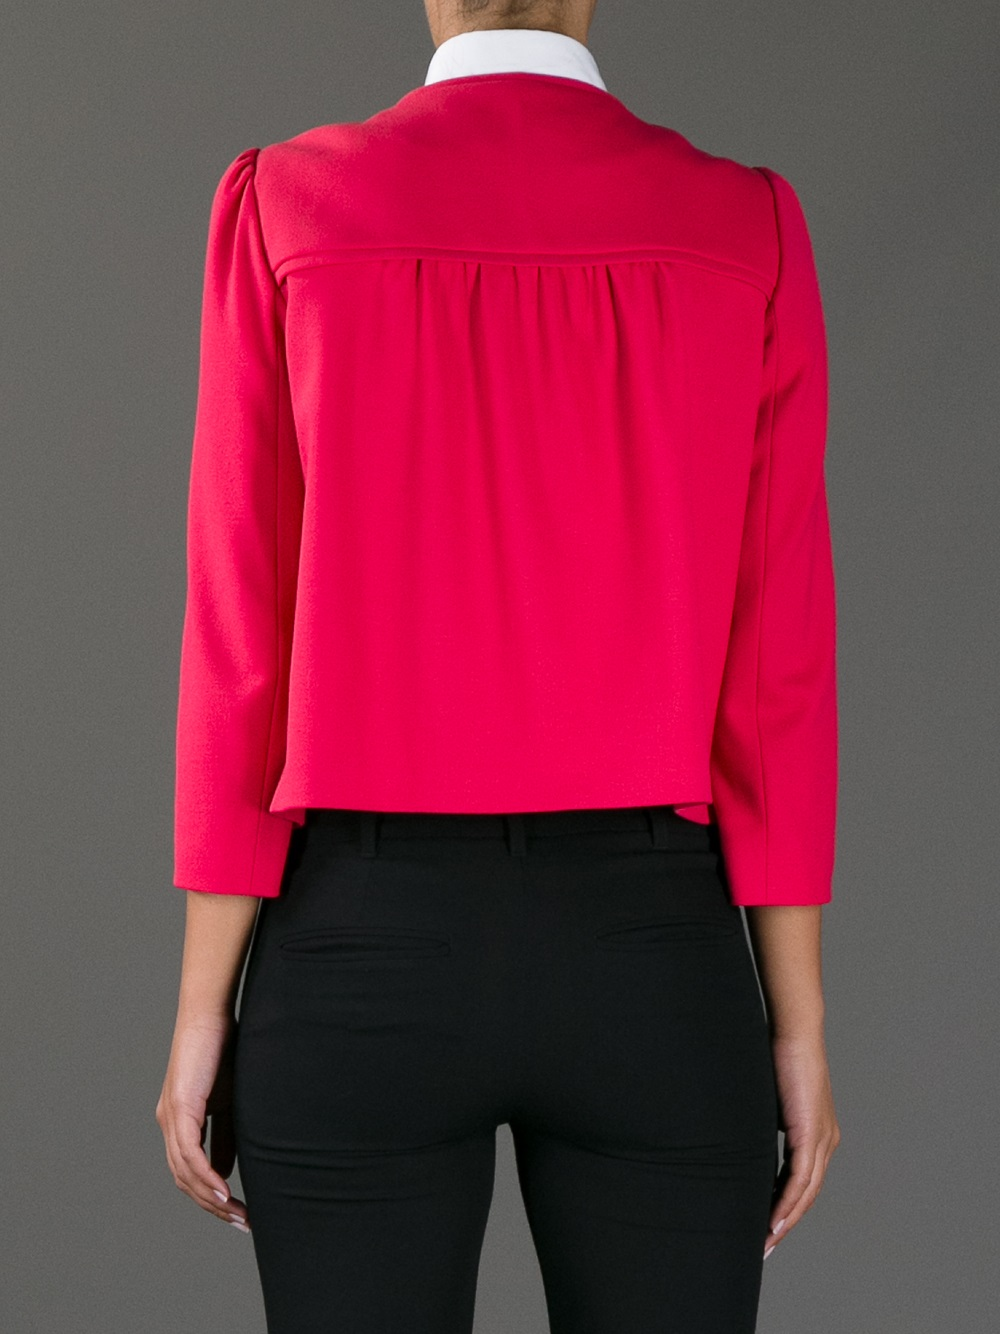 Lyst Red Valentino Cropped Jacket In Pink